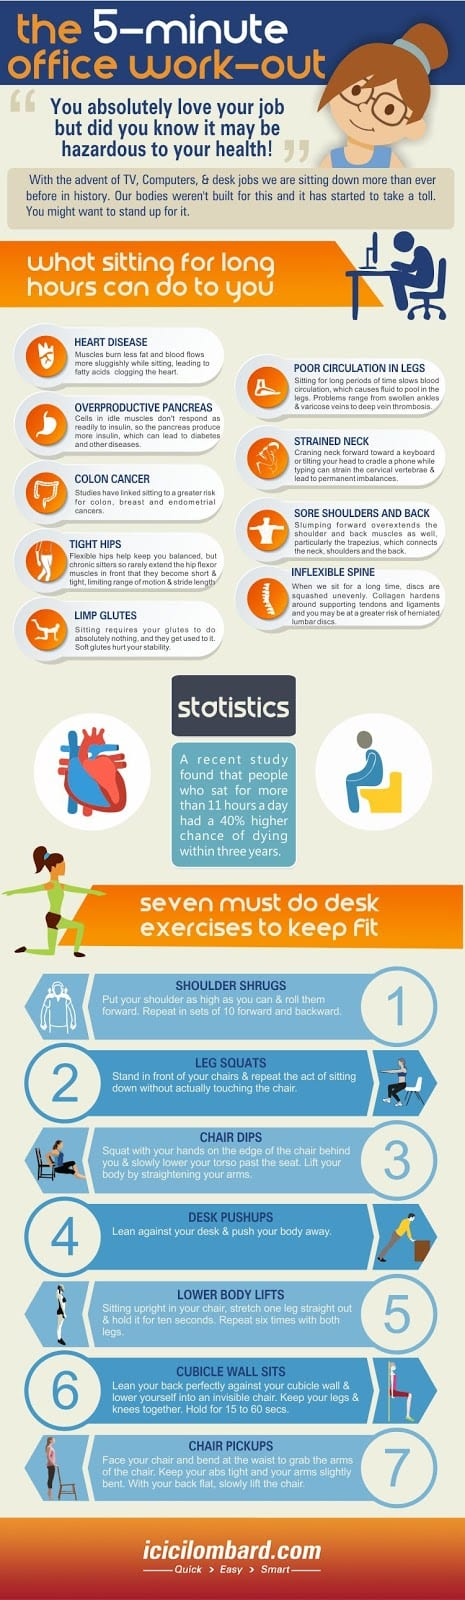 20151118-office-exercise-that-keep-you-fit-4